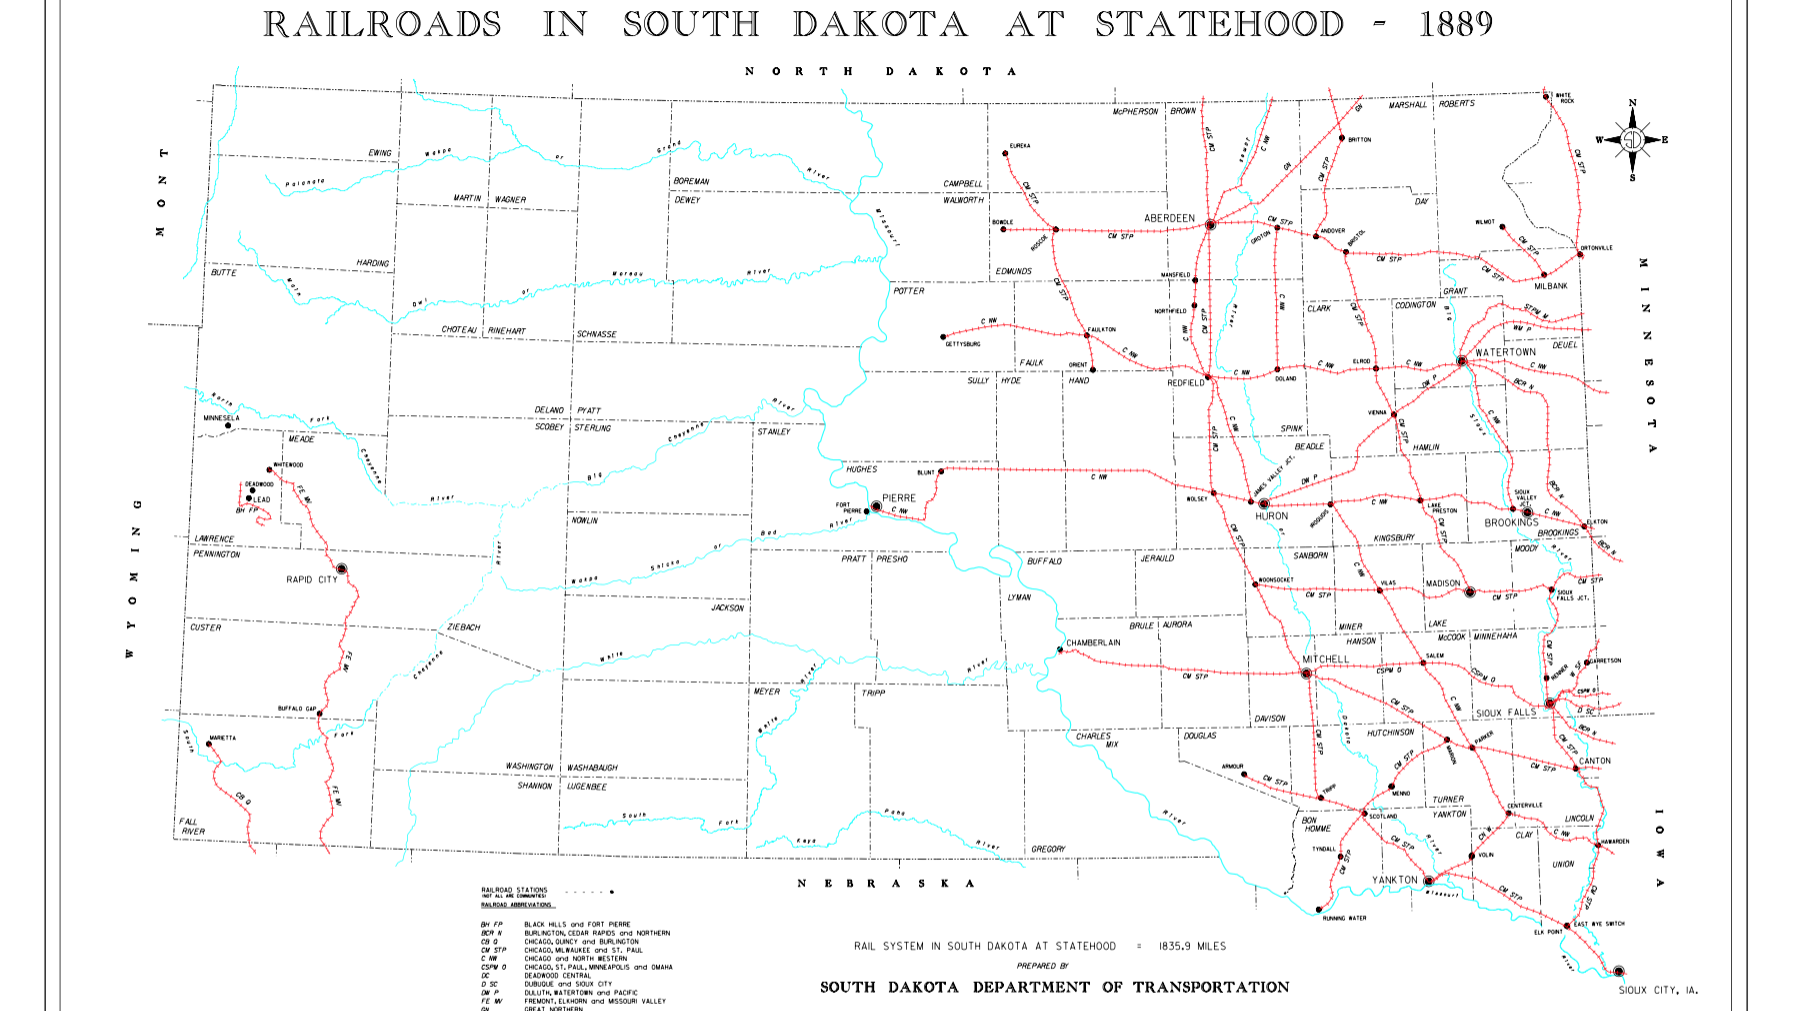 Railroads in South Dakota at Statehood